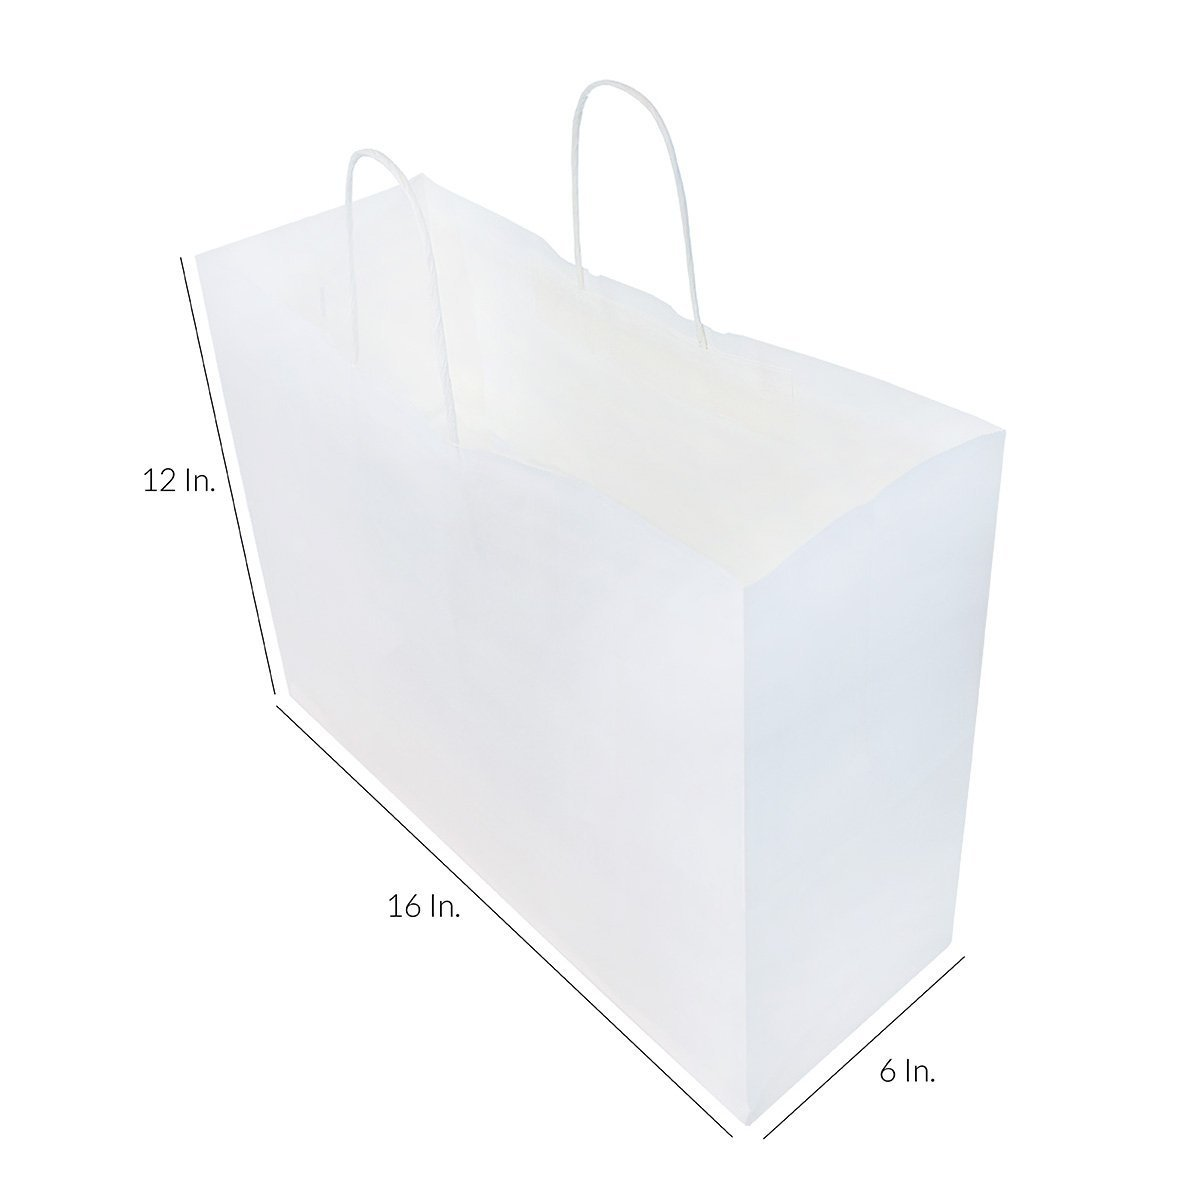 250pcs White Natural Kraft Mechandise Shopping Bag 65# Vogue, Natural White Paper Shoppers,16 x 6 x 12 1/2'' ~250 Bags-~ by SuitEase (Image #2)